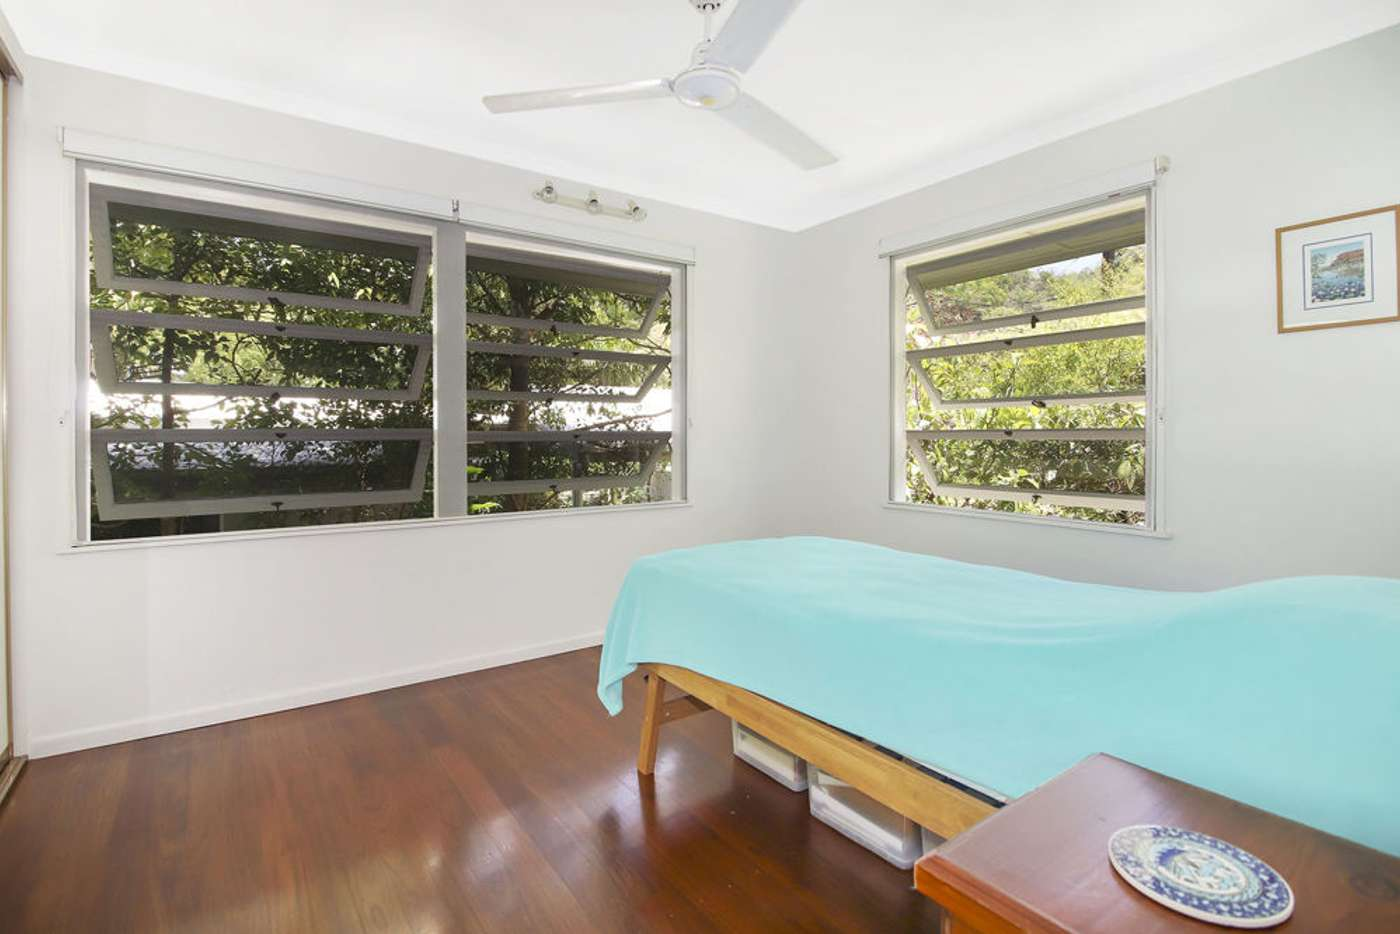 Sixth view of Homely house listing, 61 Hillview Crescent, Whitfield QLD 4870